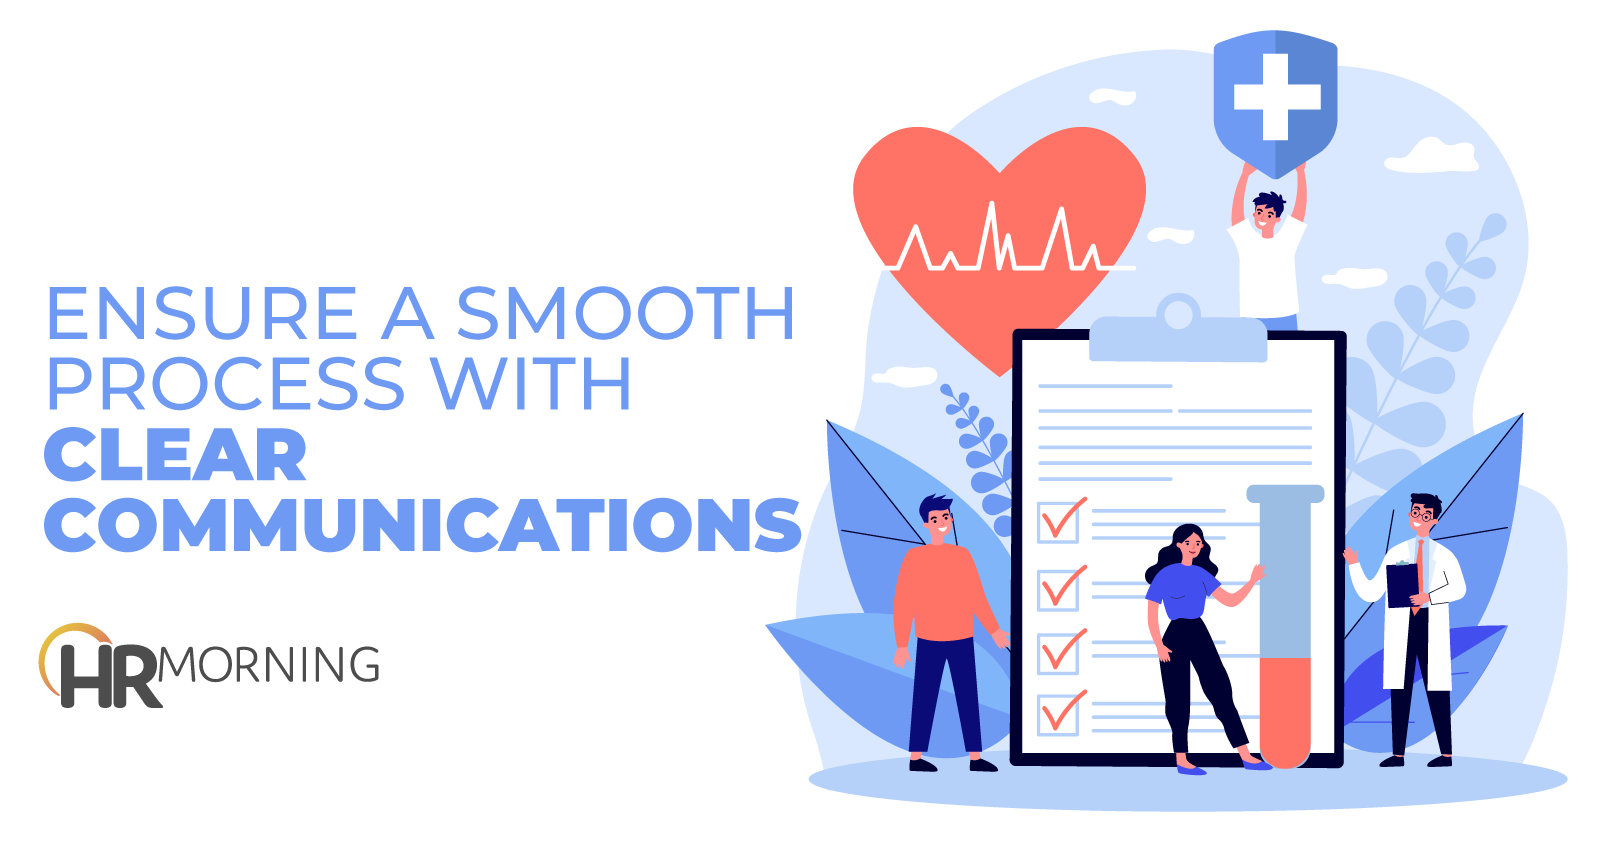 Ensure A Smooth Process With Clear Communications